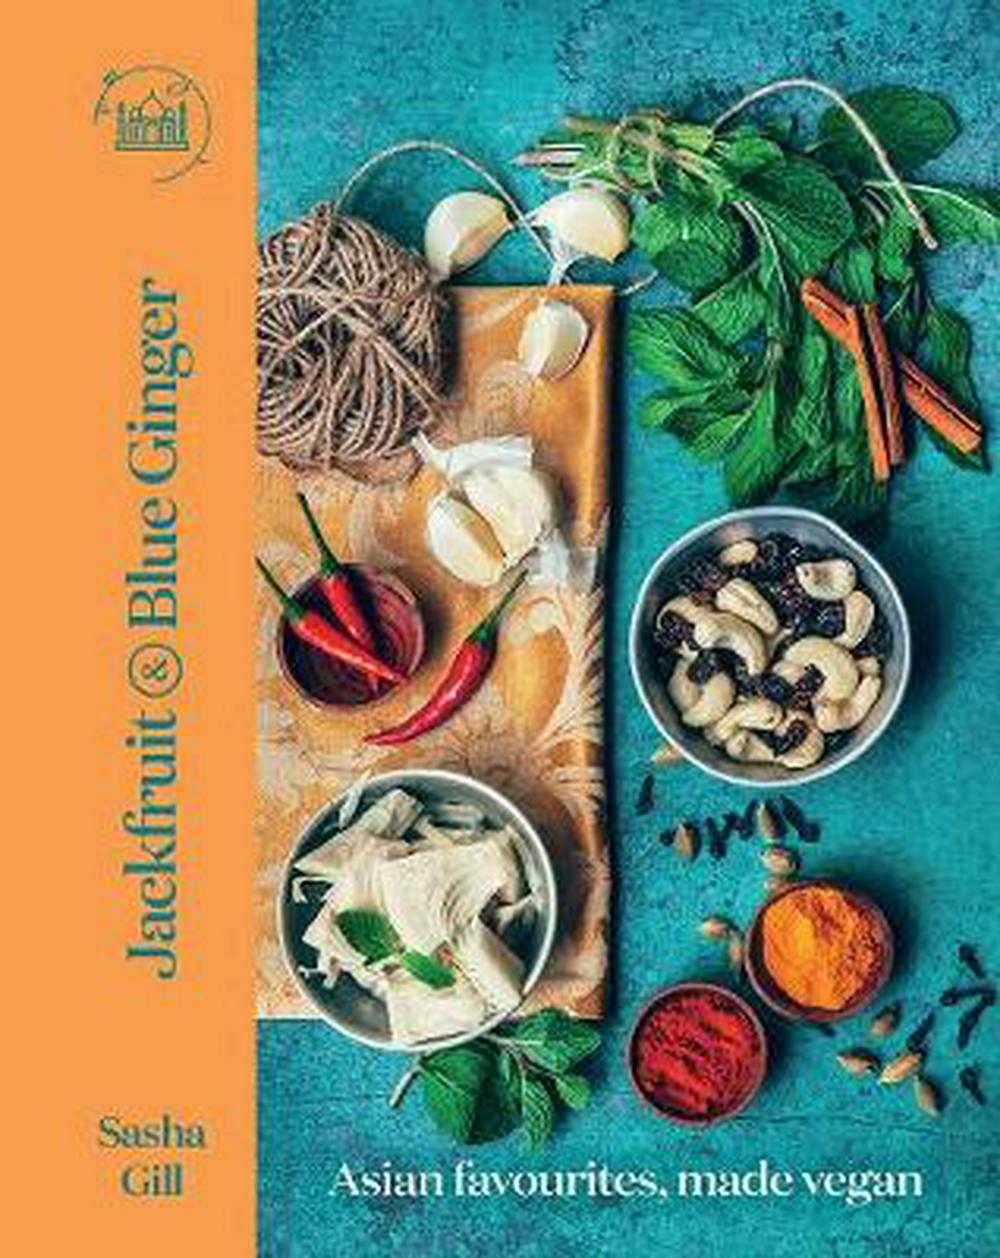 Jackfruit and Blue Ginger: Asian favourites, made vegan by Sasha Gill, ISBN: 9781760631772